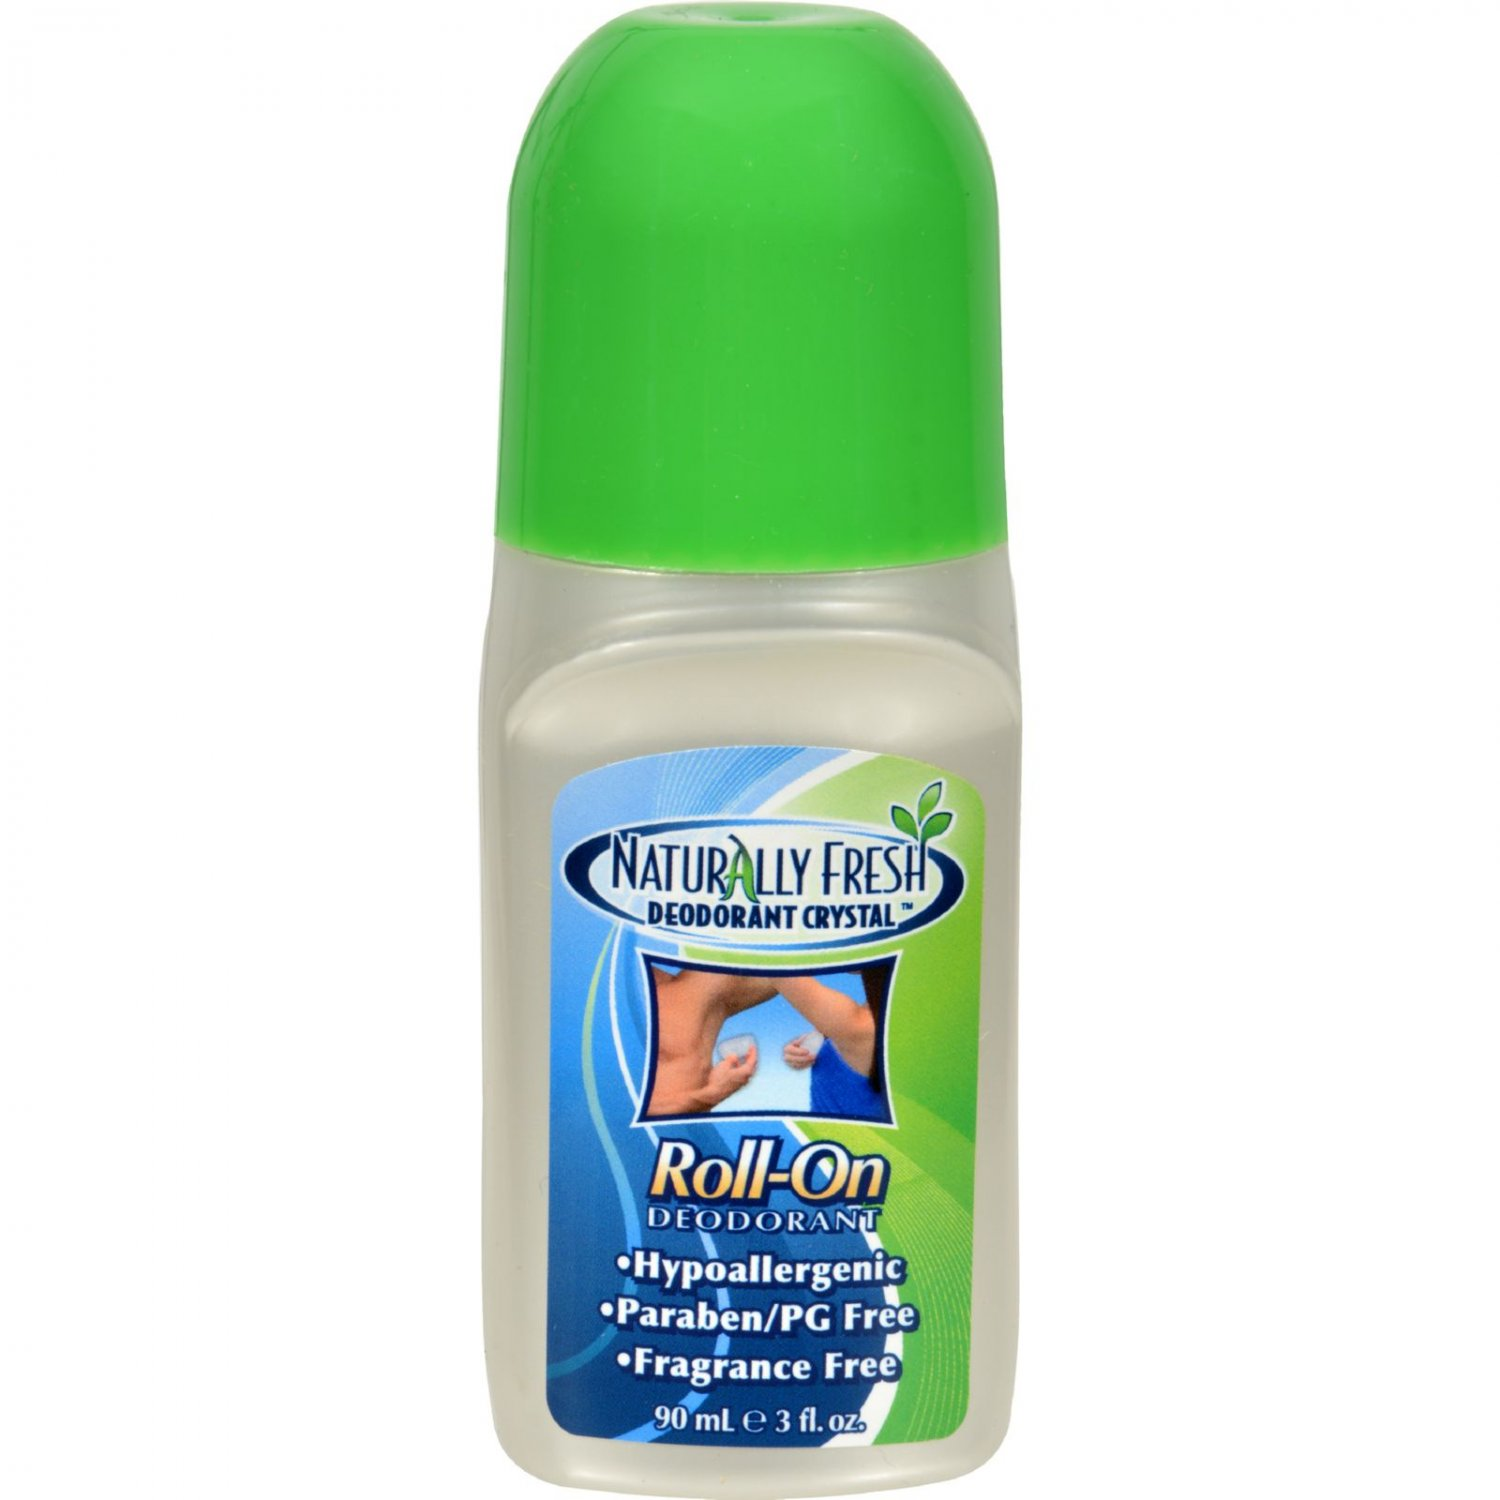 Naturally Fresh Roll On Deodorant Crystal - 3 oz